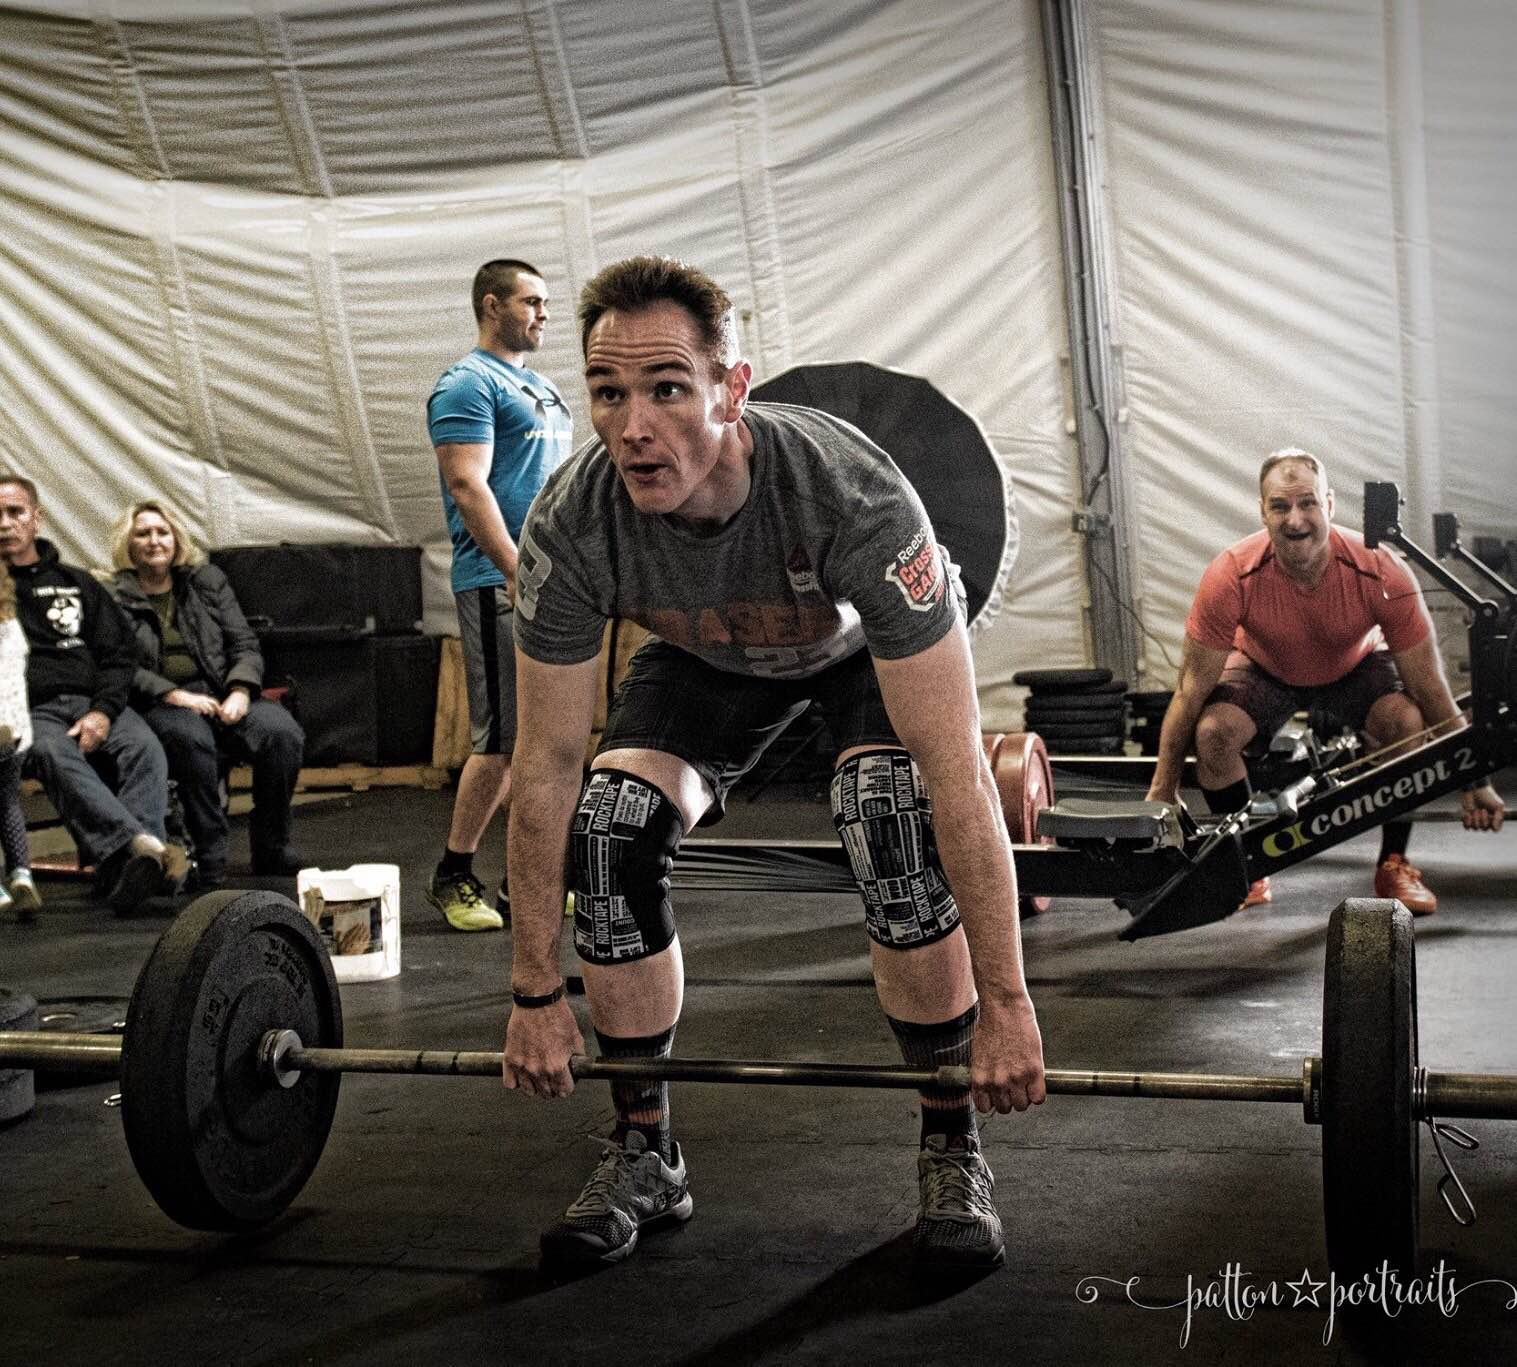 Iron major crossfit trainers